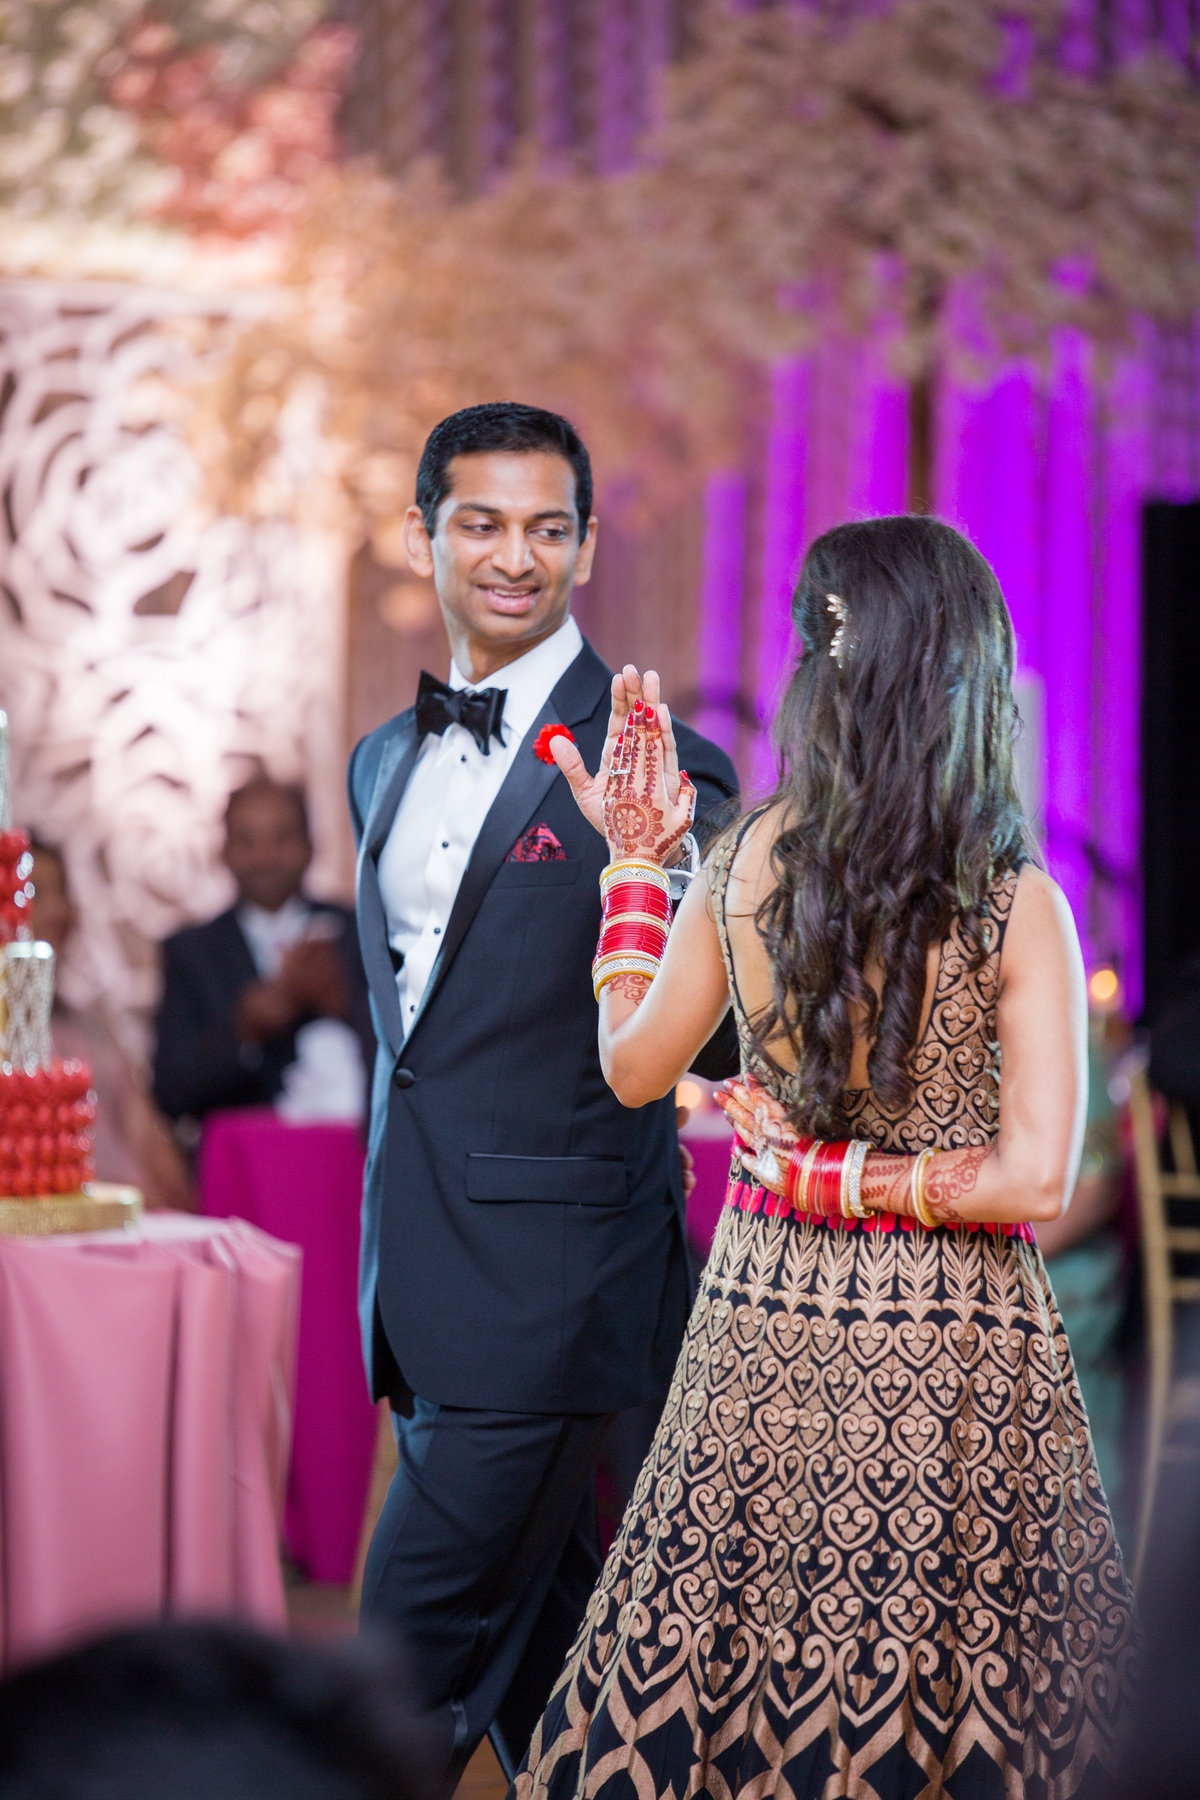 Le Cape Weddings - South Asian Wedding - Chicago Wedding Photographer P&V-68-2.jpg